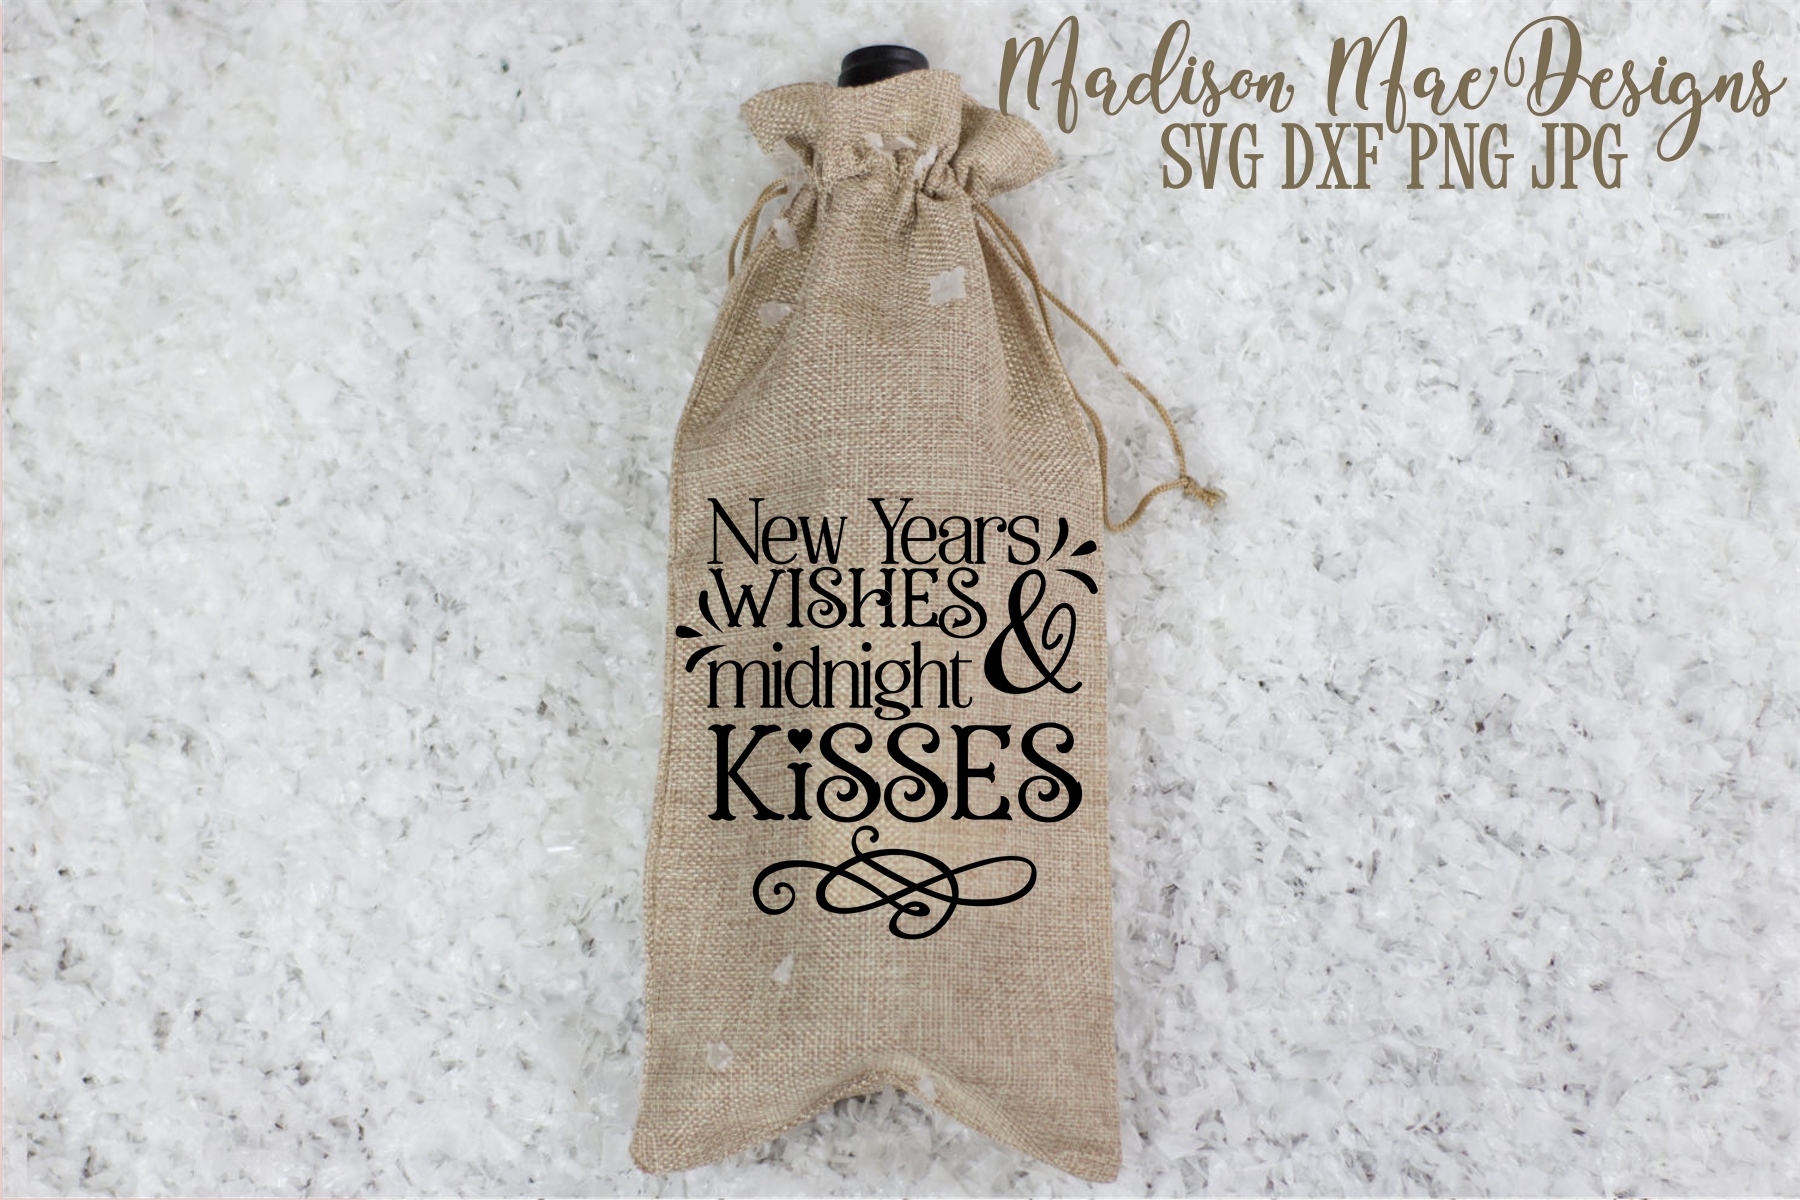 New Years Wishes and Midnight Kisses SVG, Holiday SVG example image 2